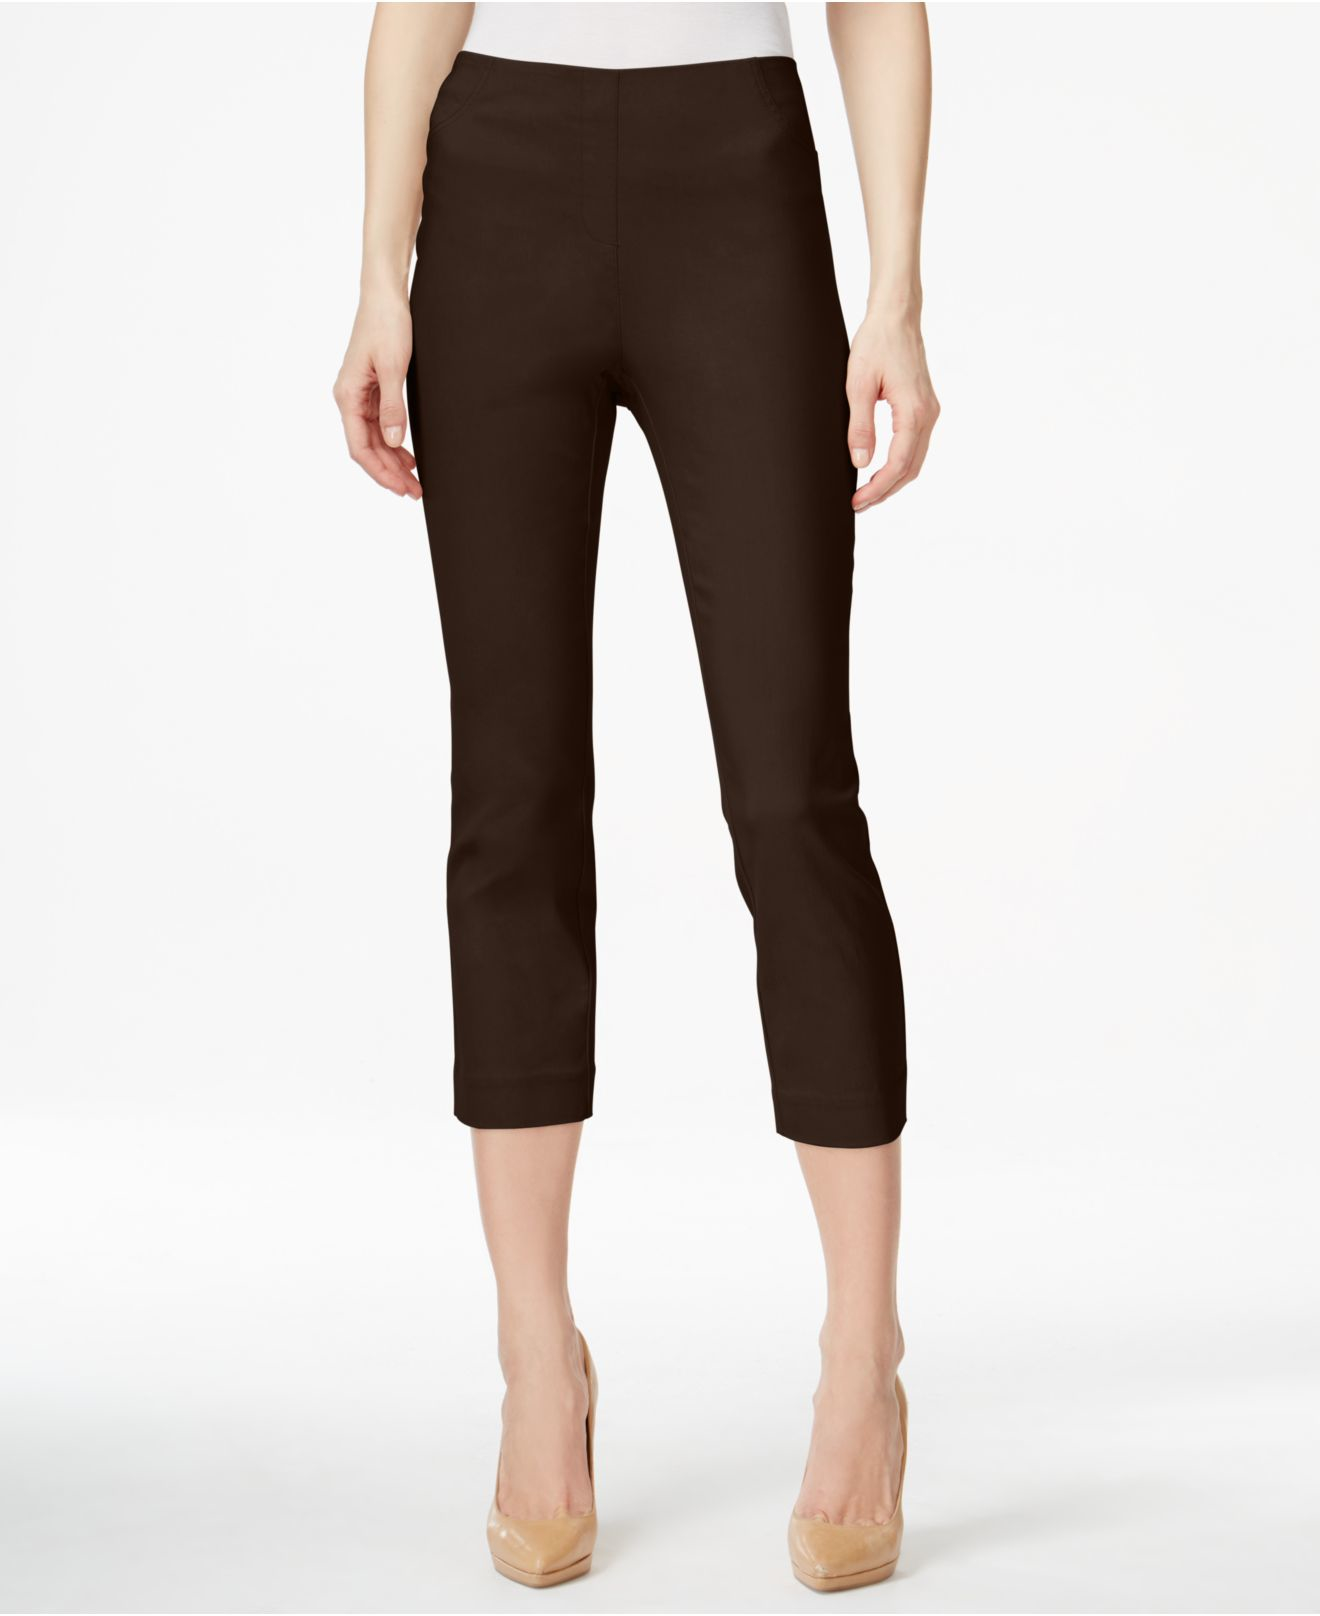 Style & co. Pull-on Capri Pants, Only At Macy's in Brown ...